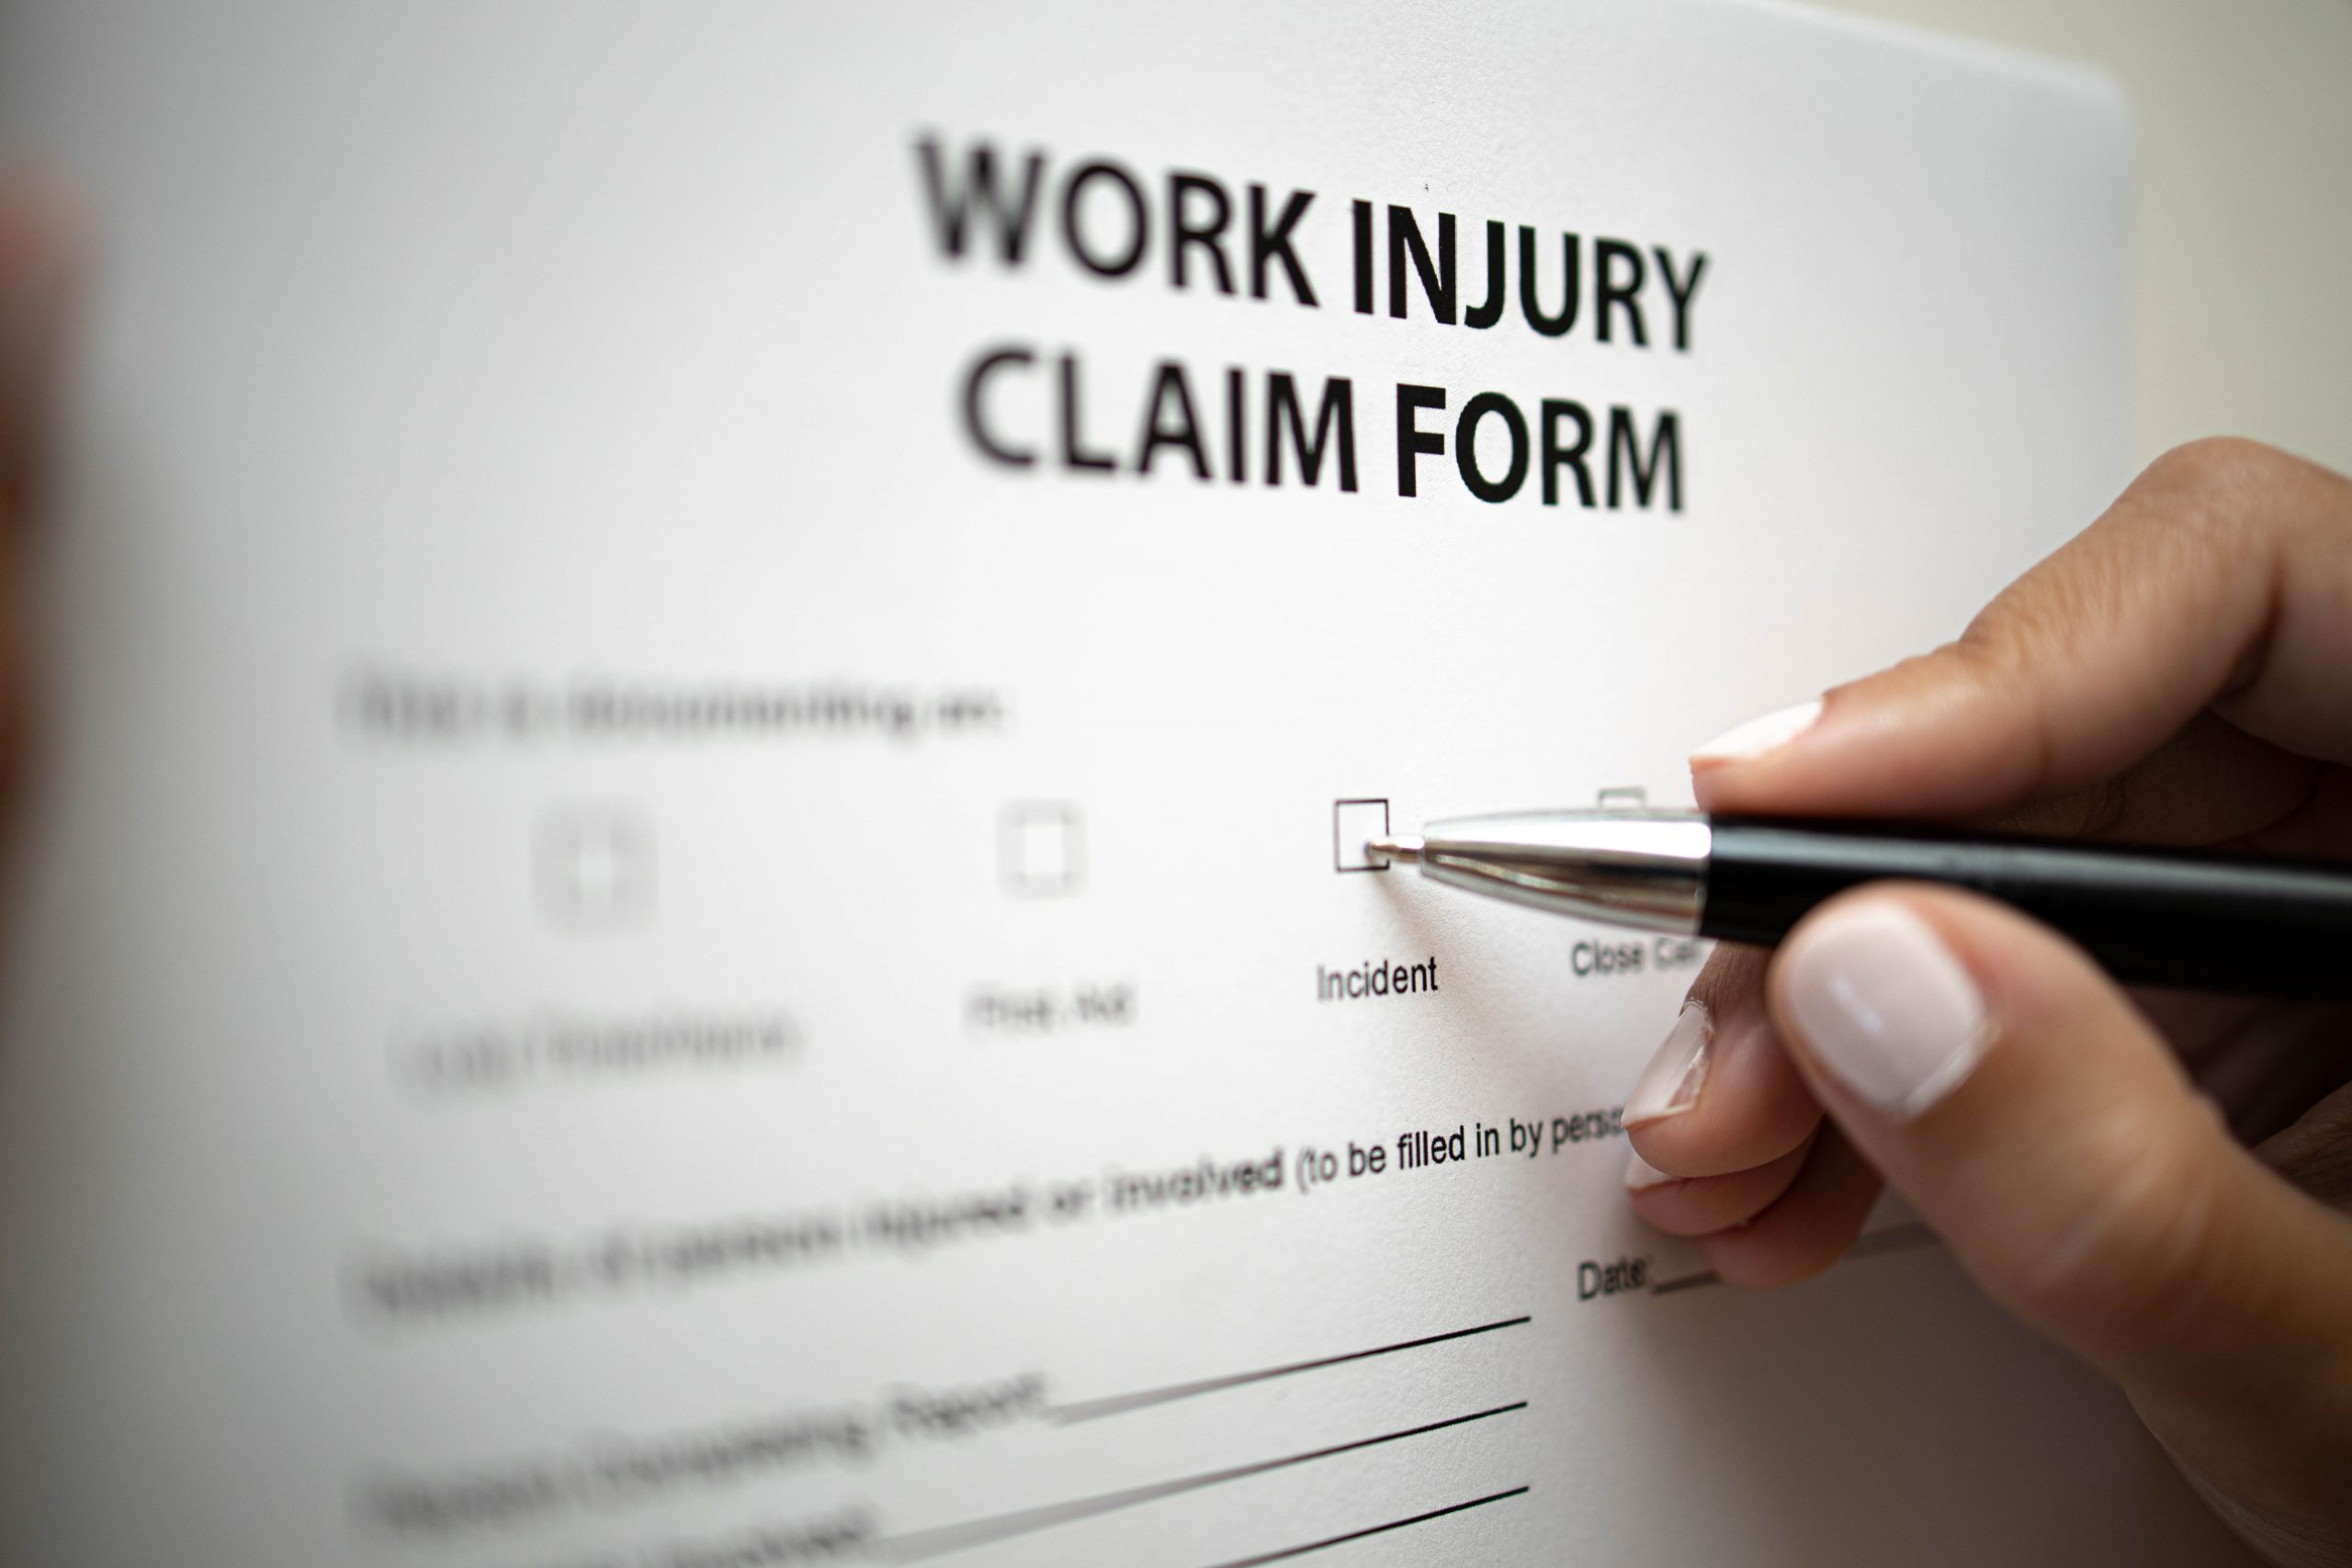 Persomn Filling a Work Injury Claim Form